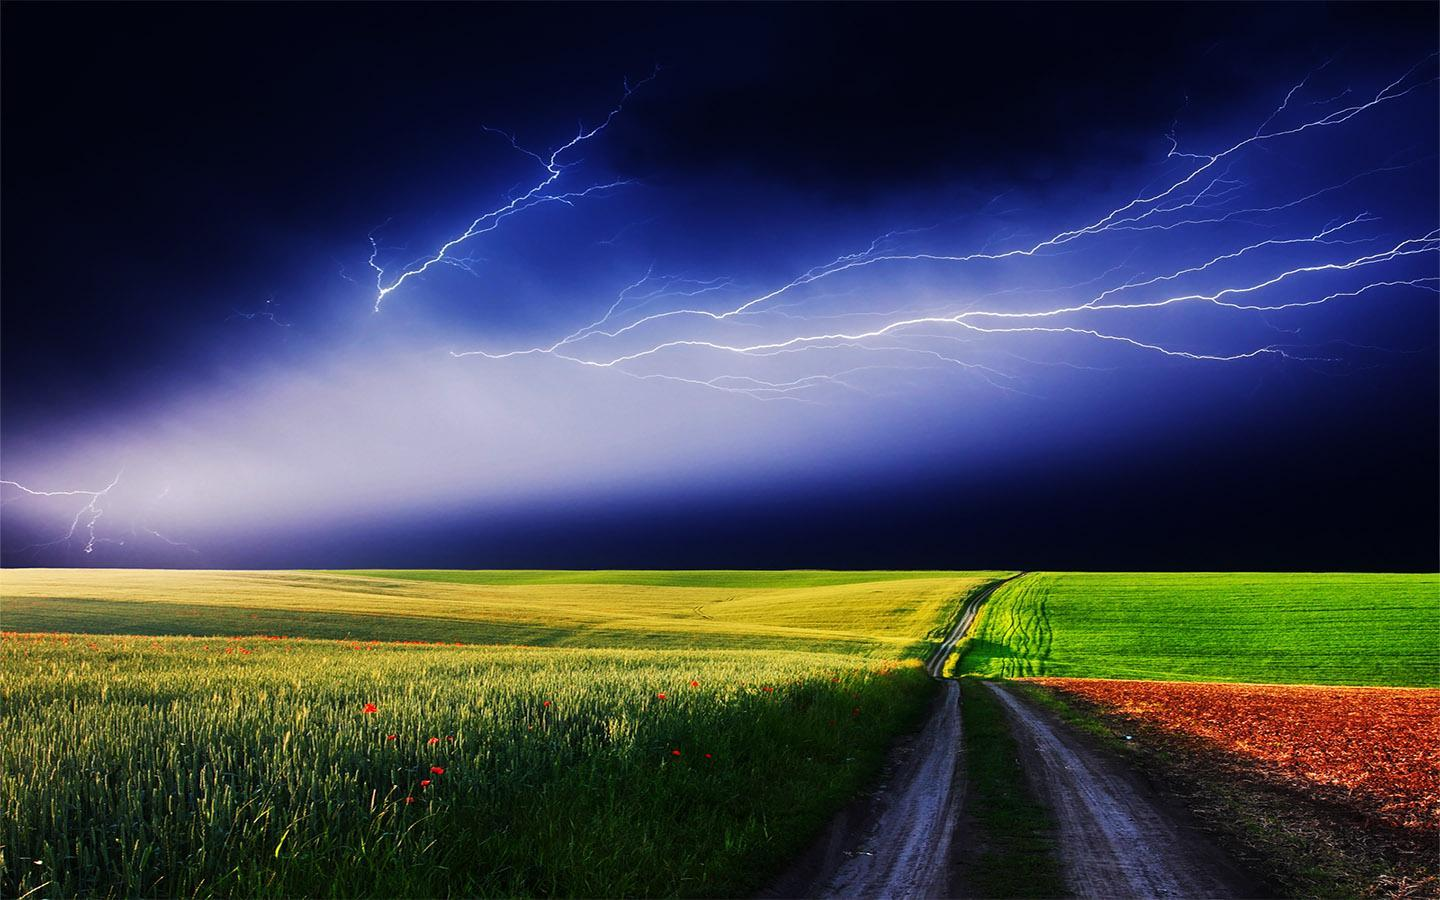 Thunderstorm HD wallpaper for Android   APK Download 1440x900